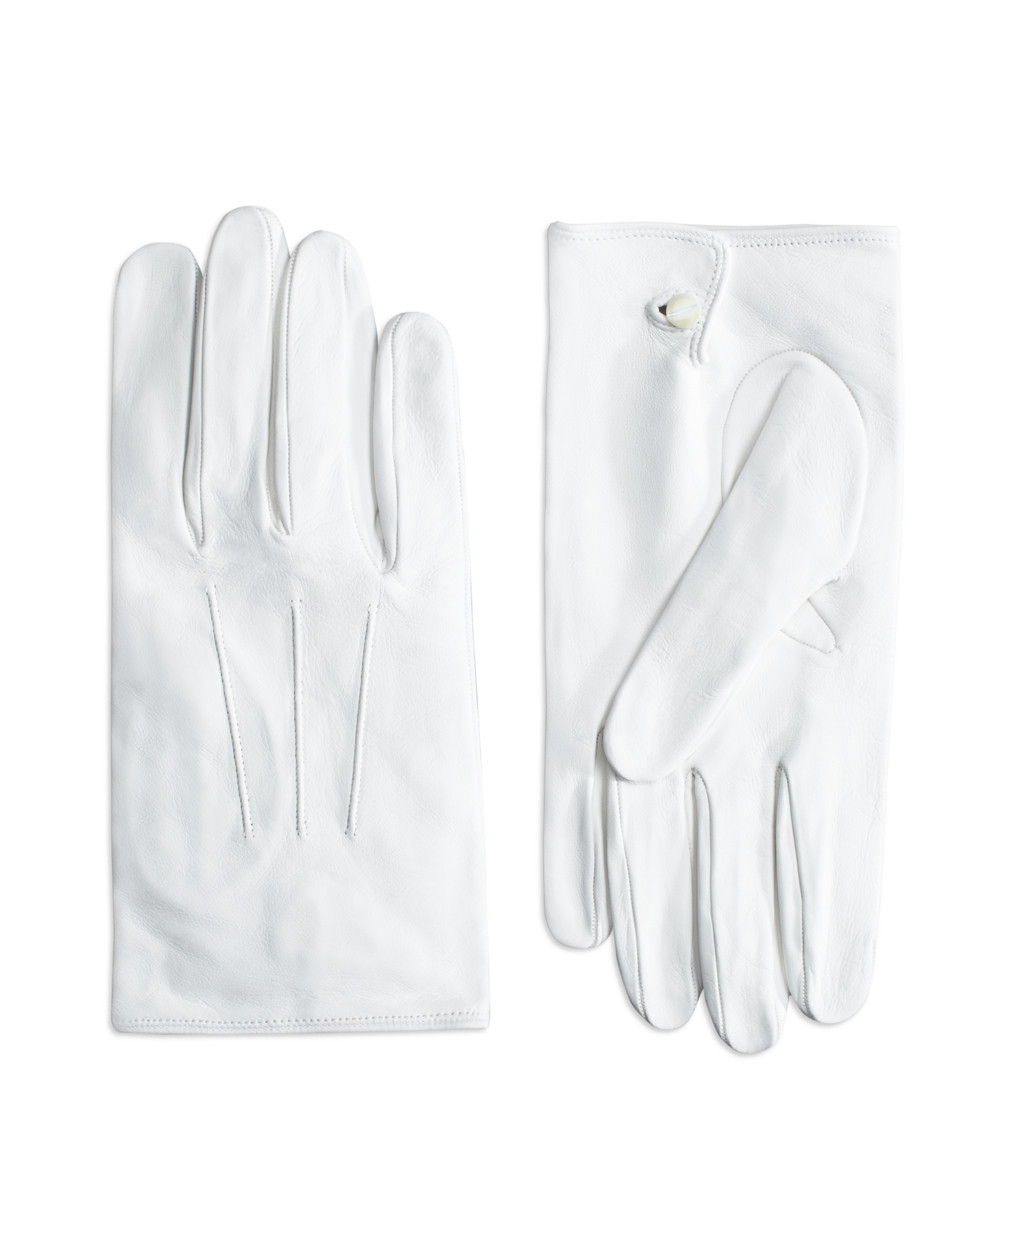 Edwardian Titanic Men's Formal Tuxedo Guide Mens White Formal Gloves $148.00 AT vintagedancer.com